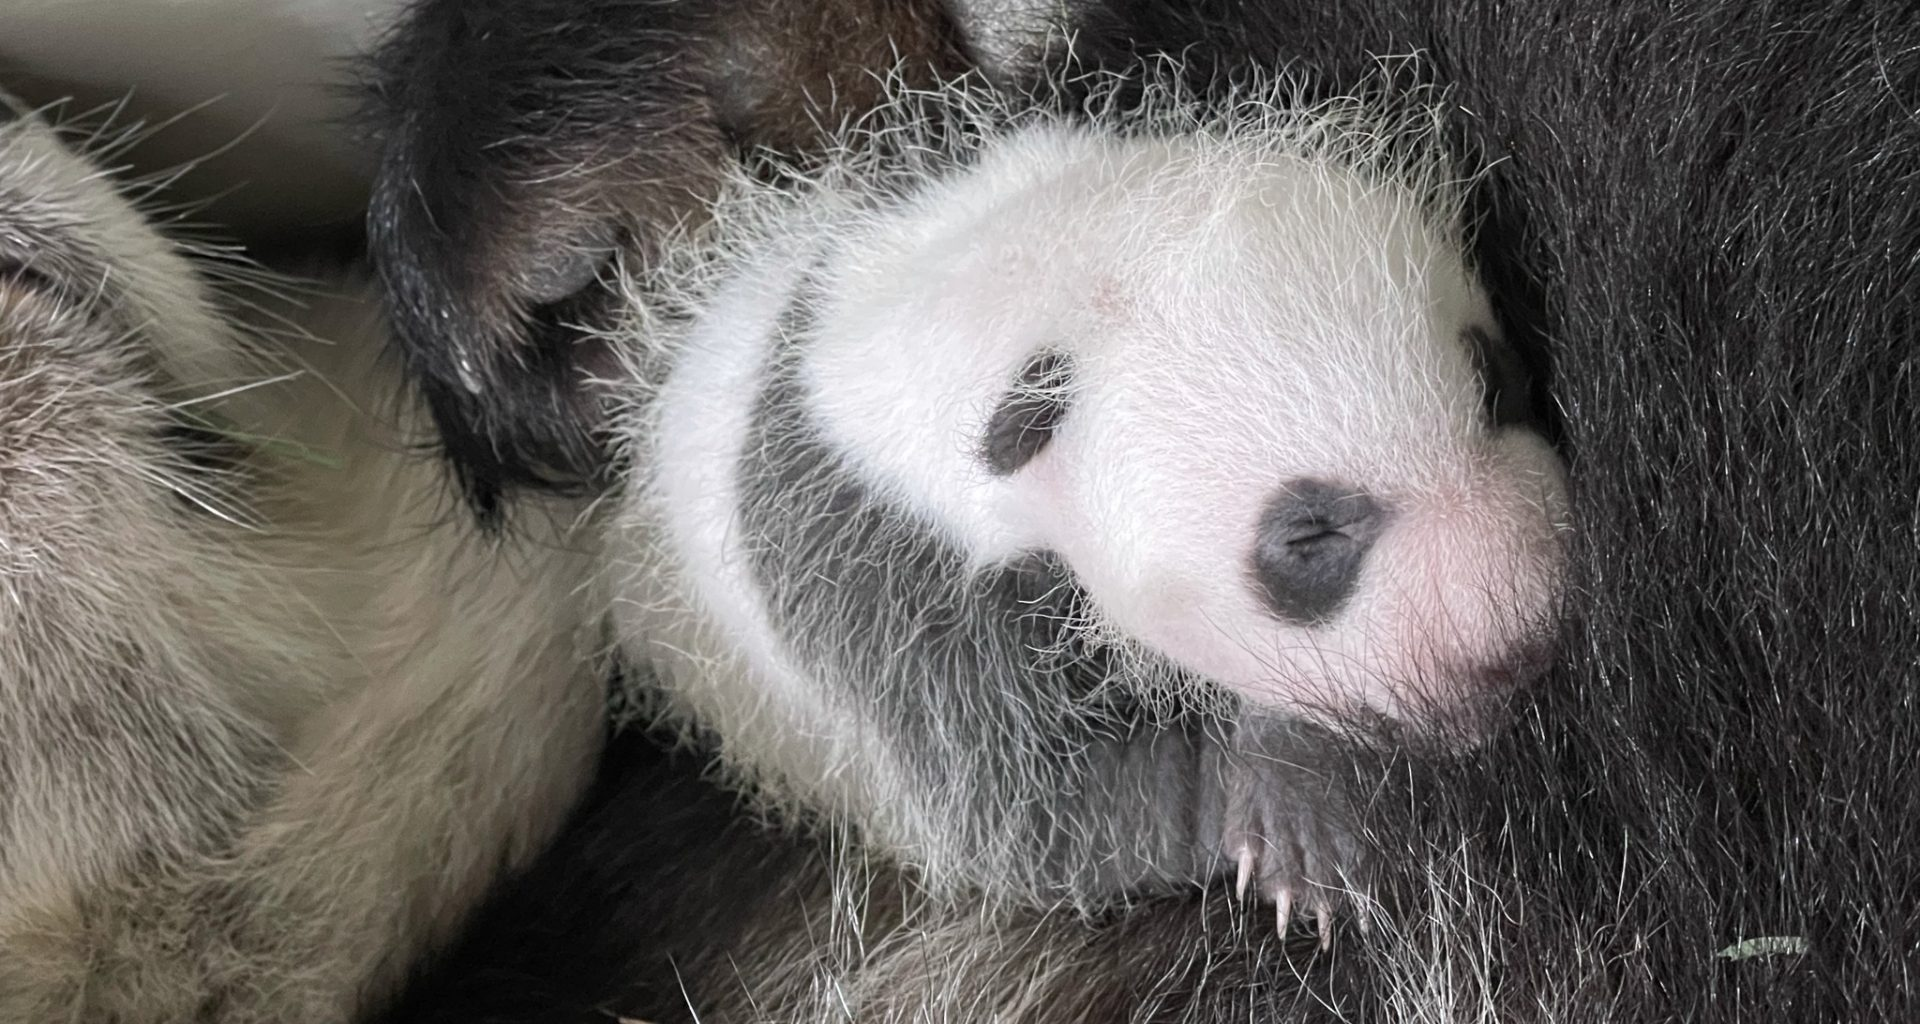 Singapore's first Giant Panda Cub is a Boy! You can now participate in naming the #littleone before he turns 100 days old - Alvinology